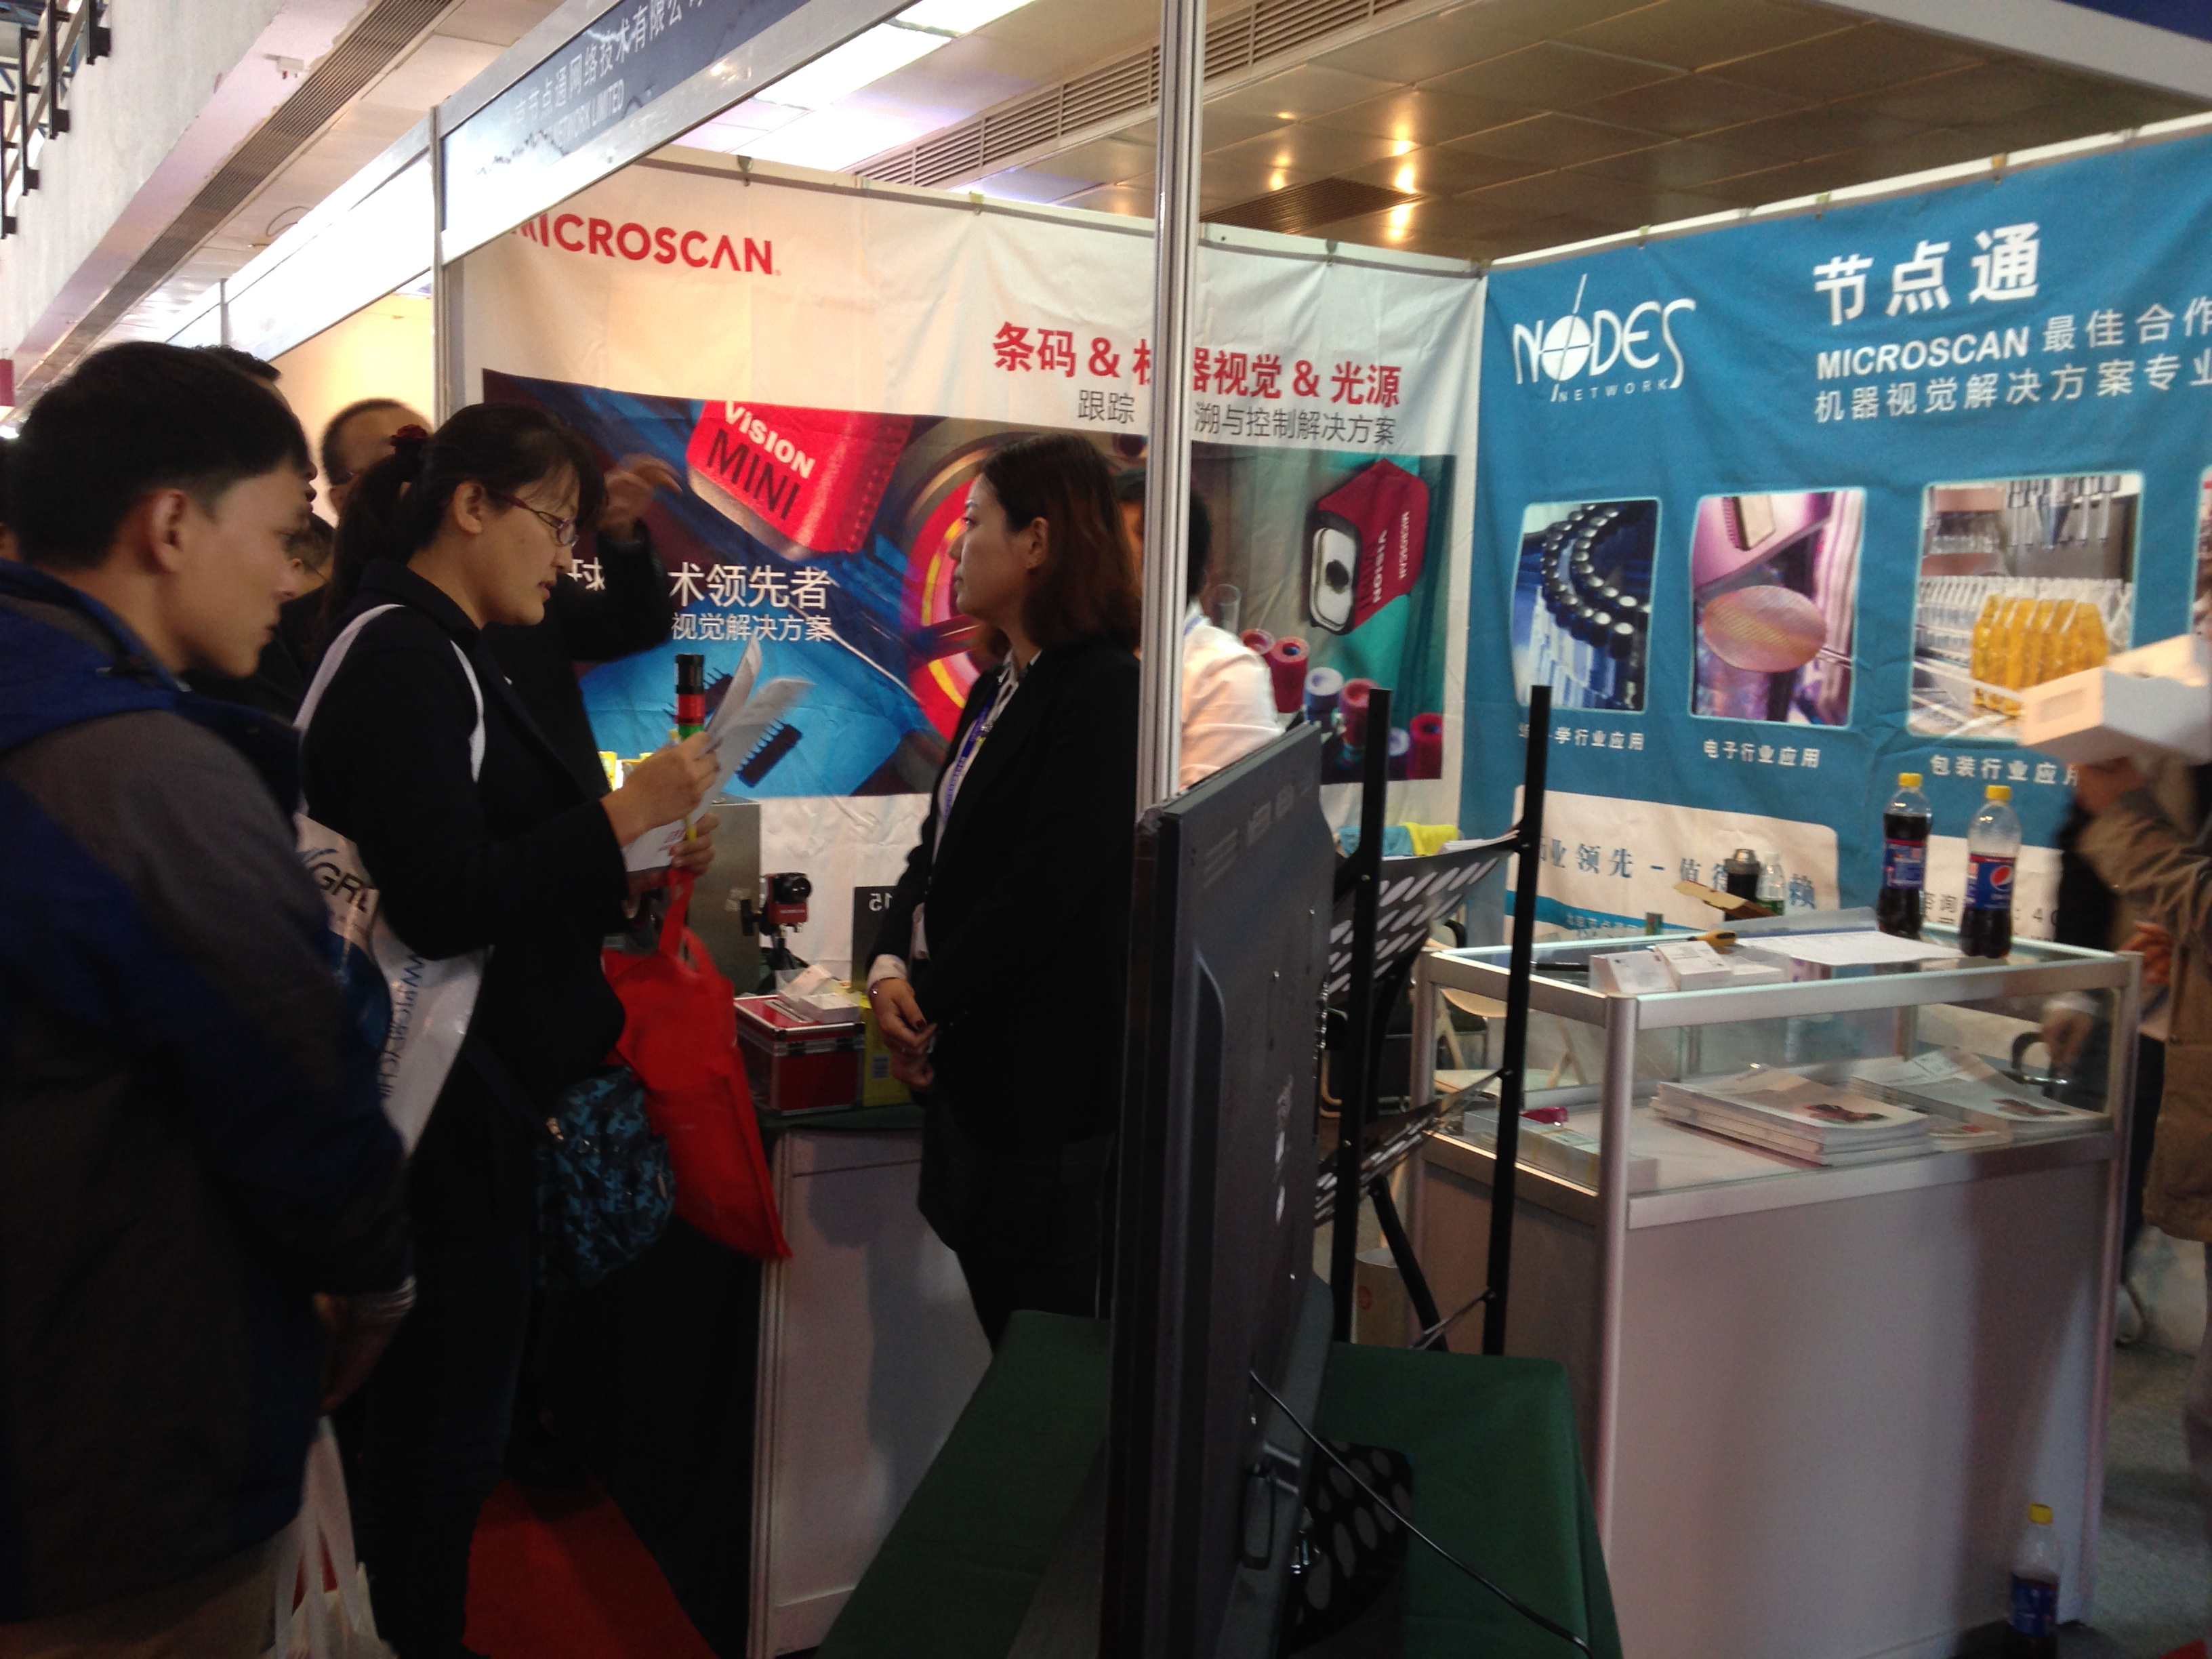 Microscan Partner Beijing Nodes at Vision China Beijing 2014